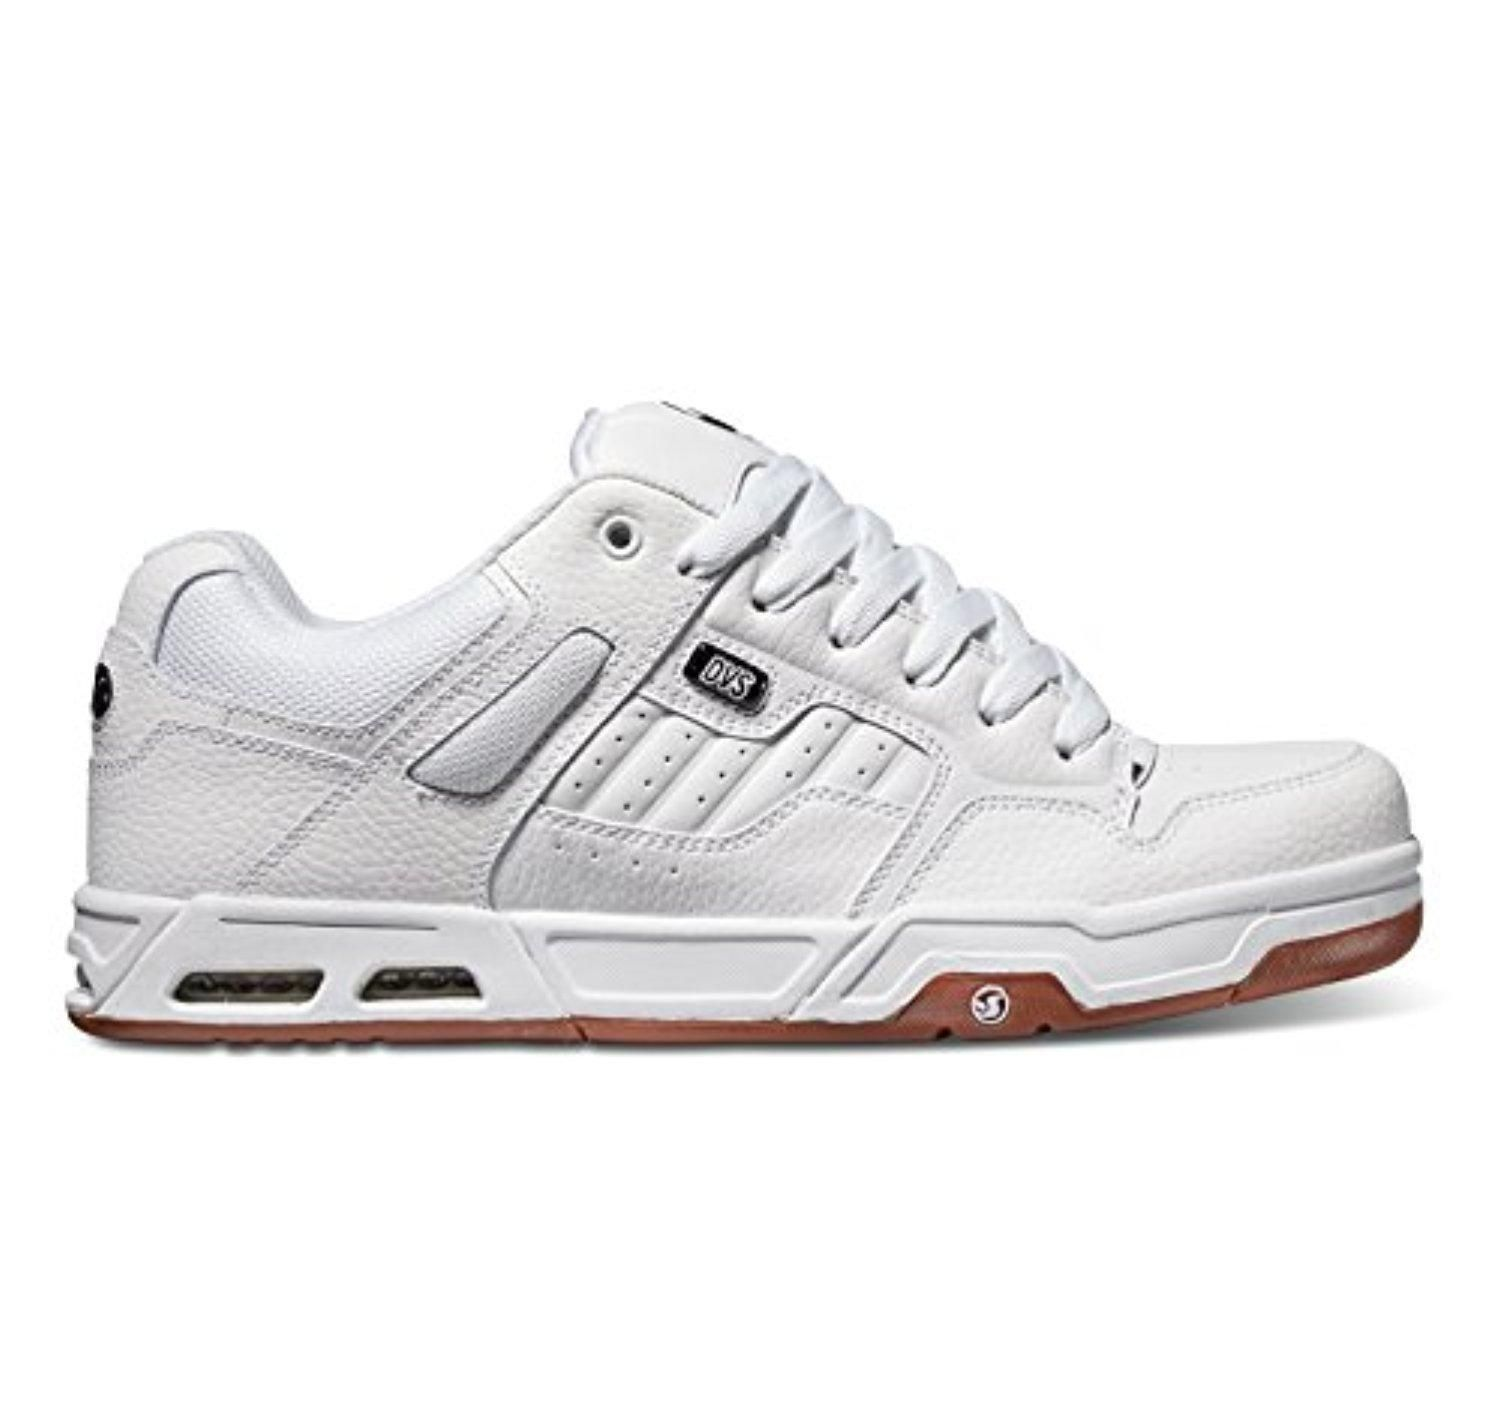 12c420b039 DVS Skateboard Shoes ENDURO HEIR WHITE WHITE GUM Size 14 - Brought to you  by Avarsha.com